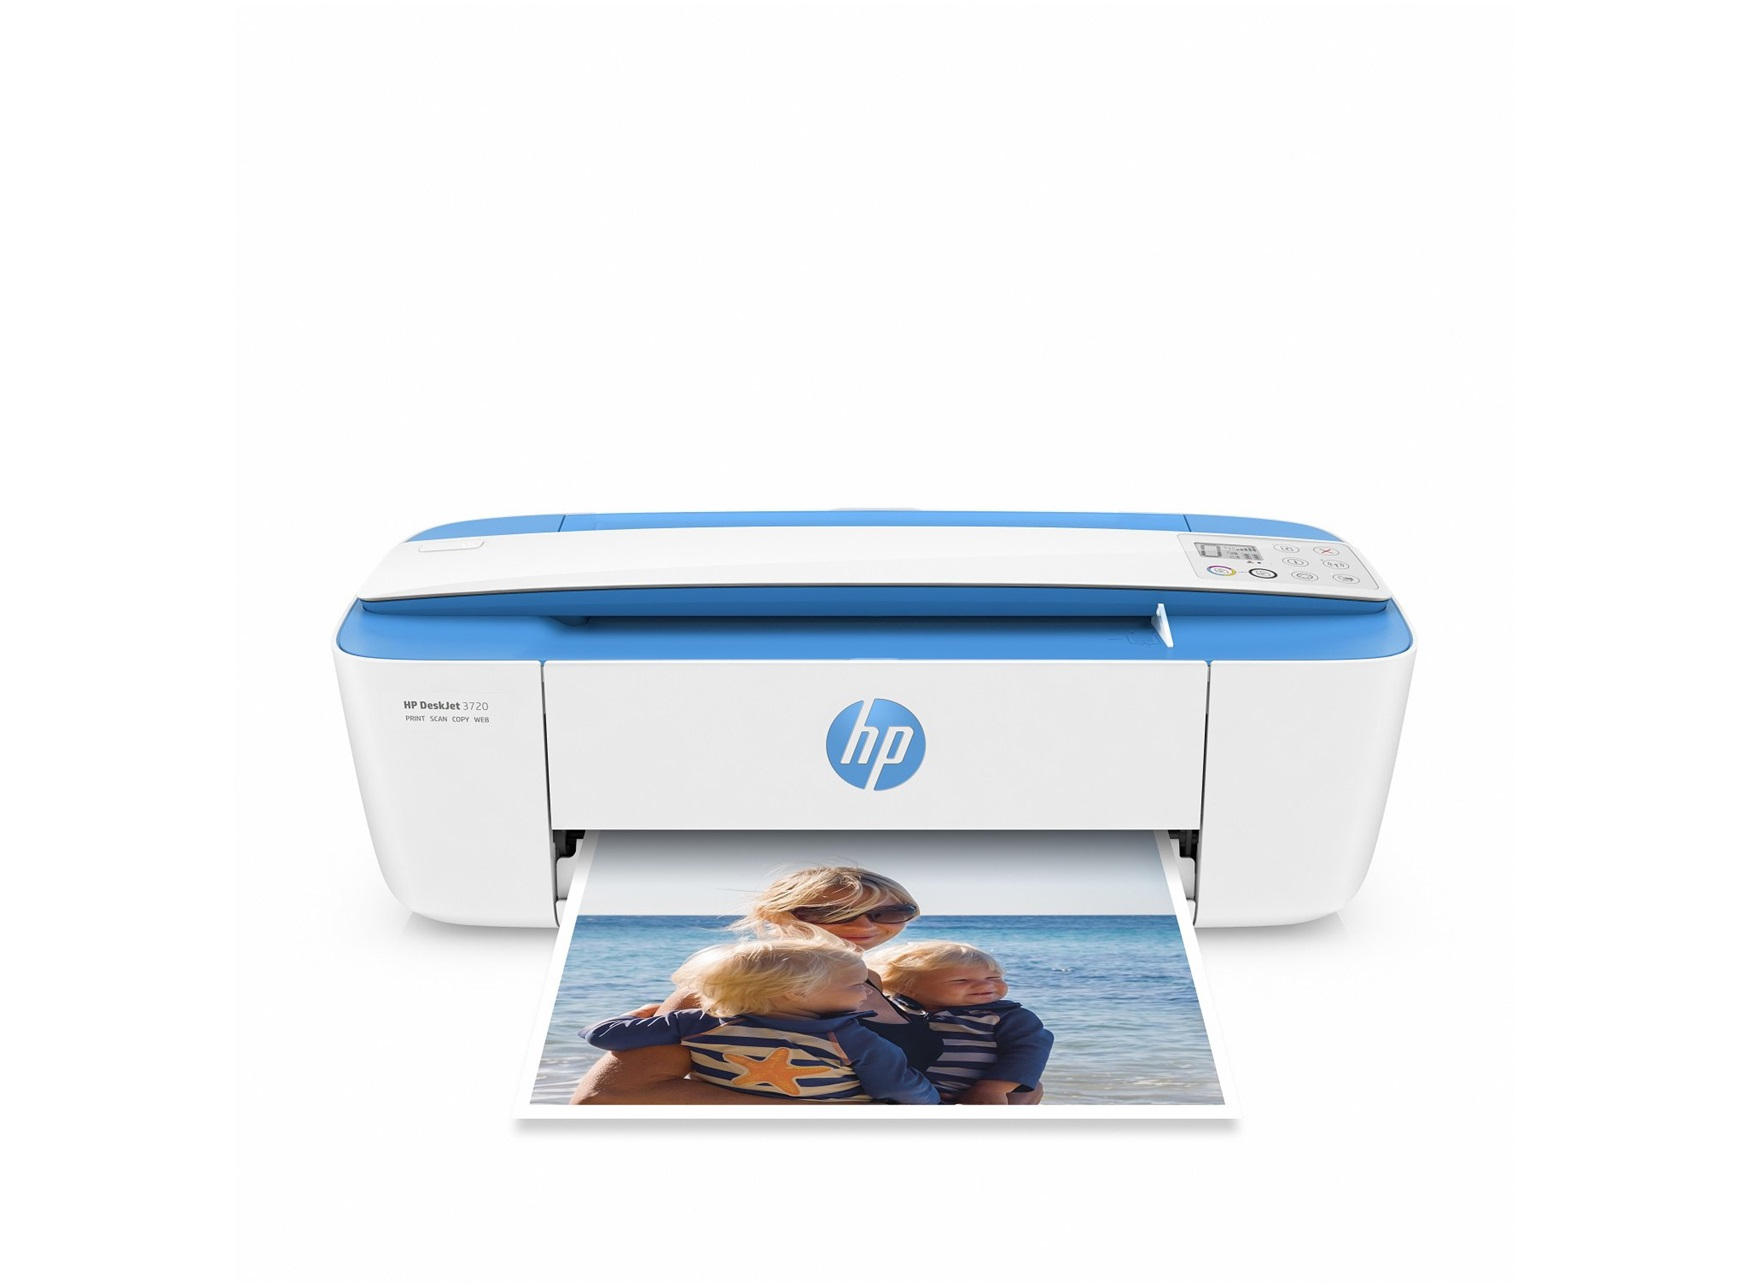 Hewlett Packard (HP) HP Deskjet 3720 All-in-One - Multifunkti